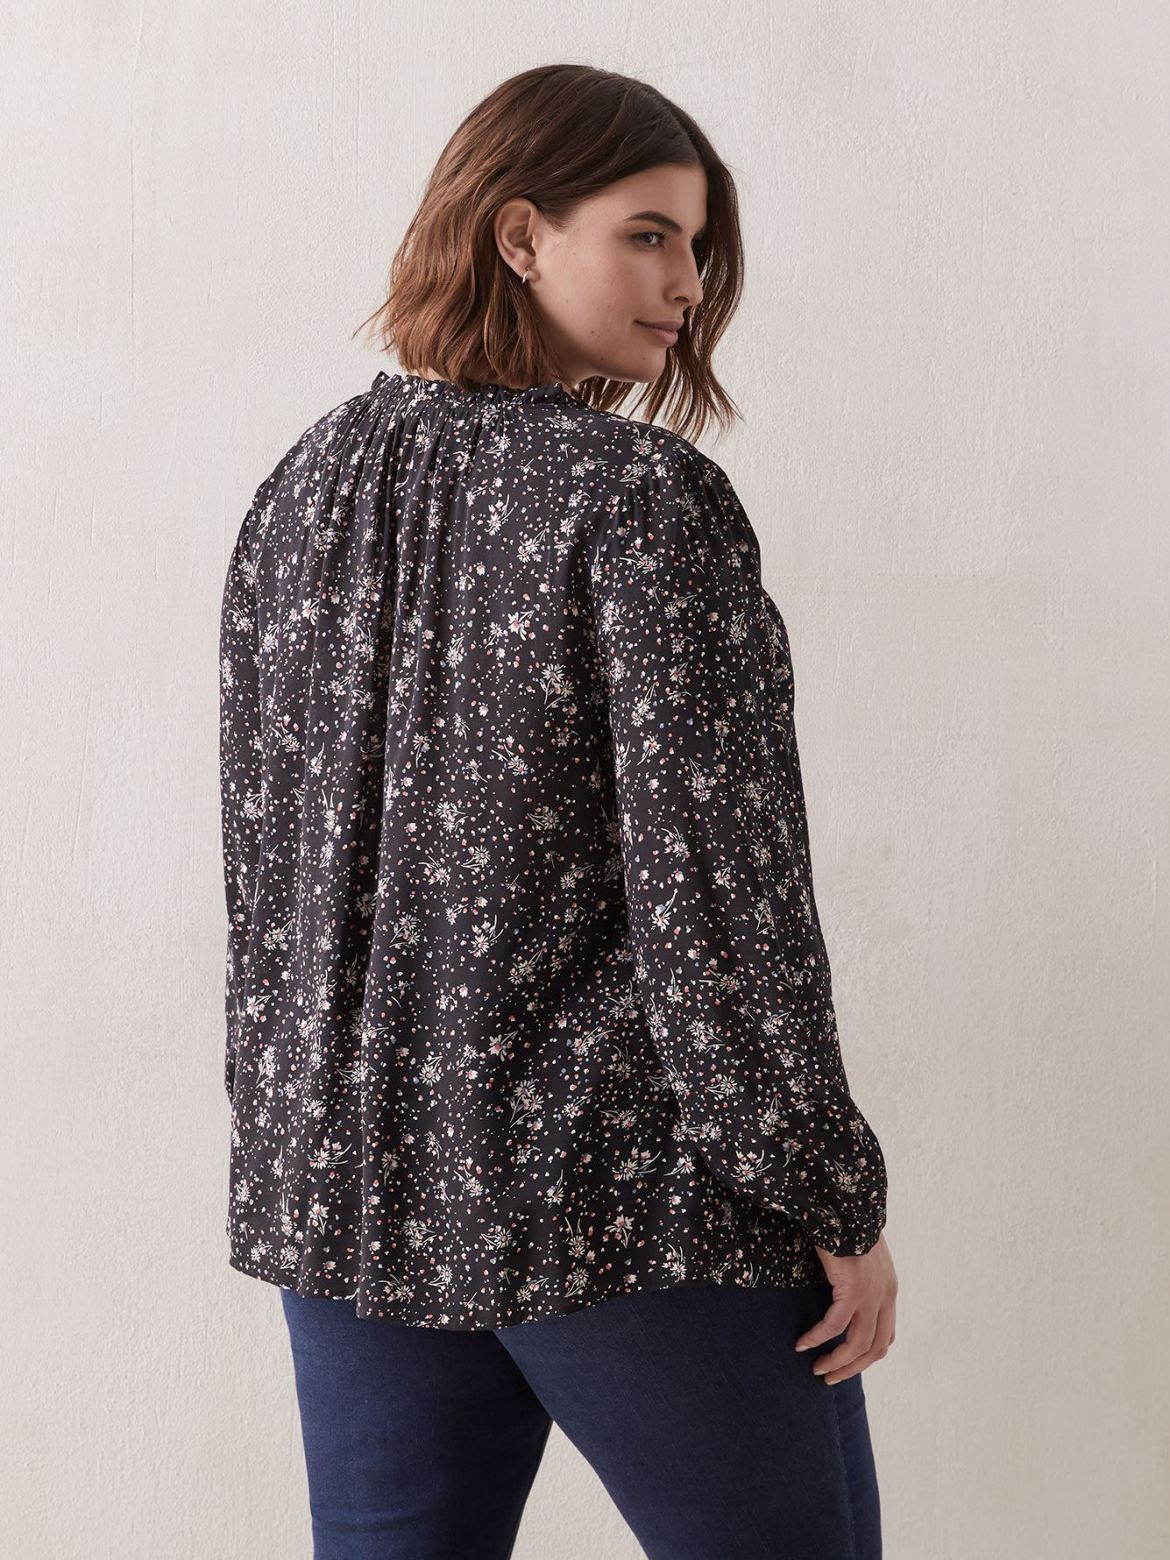 Printed Blouse With Balloon Sleeves - In Every Story